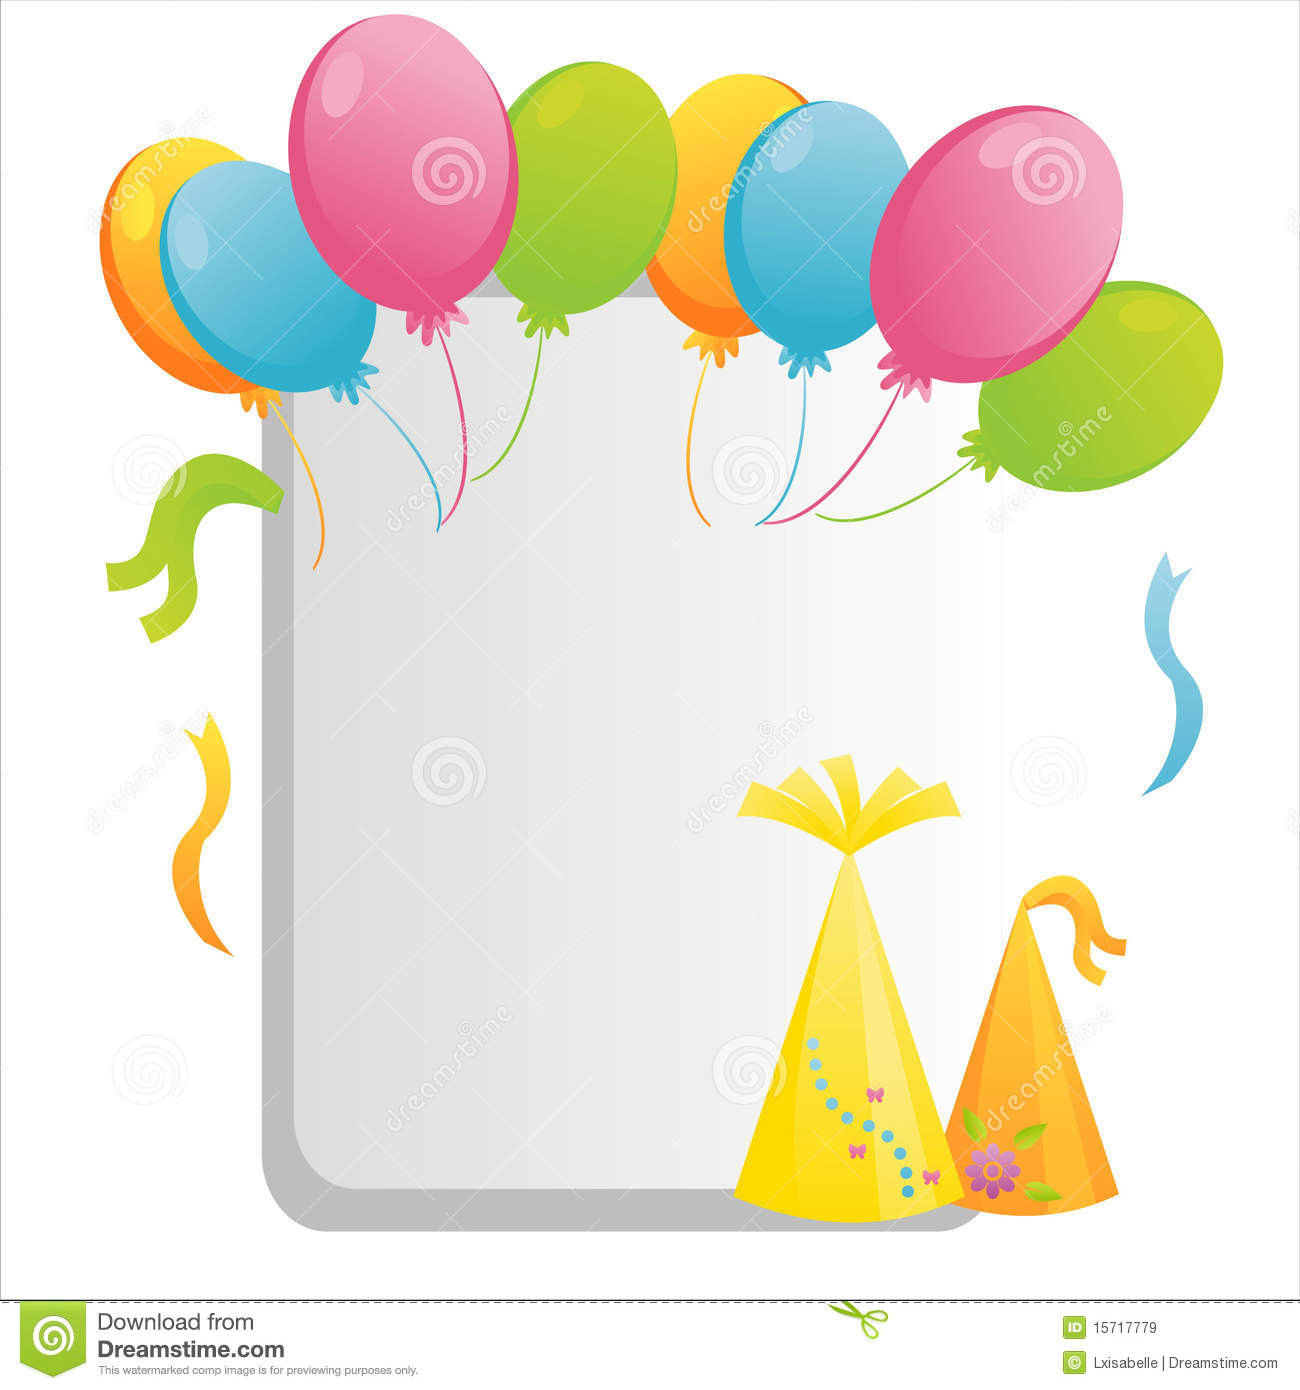 Birthday Frame Royalty Free Stock Images - Image: 15717779